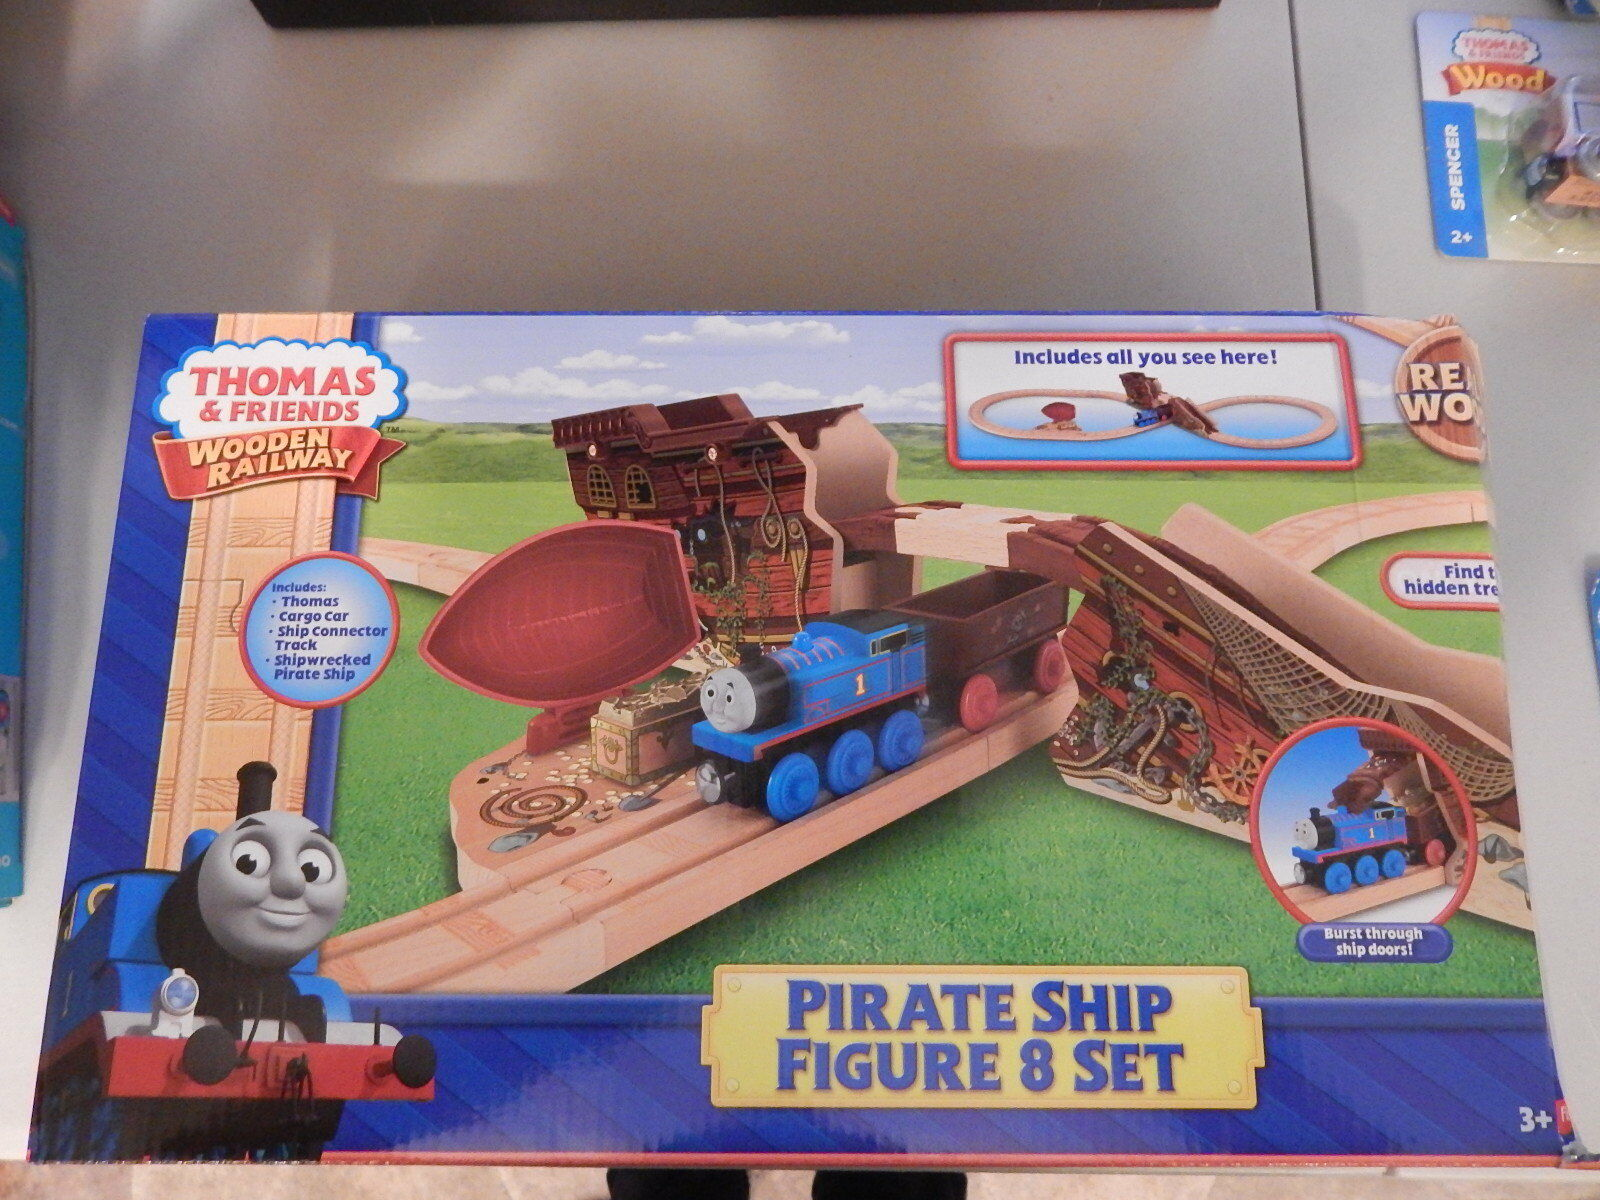 Fisher Price Thomas Friends Wooden Railway Pirate Ship Figure 8 Set Damged Box